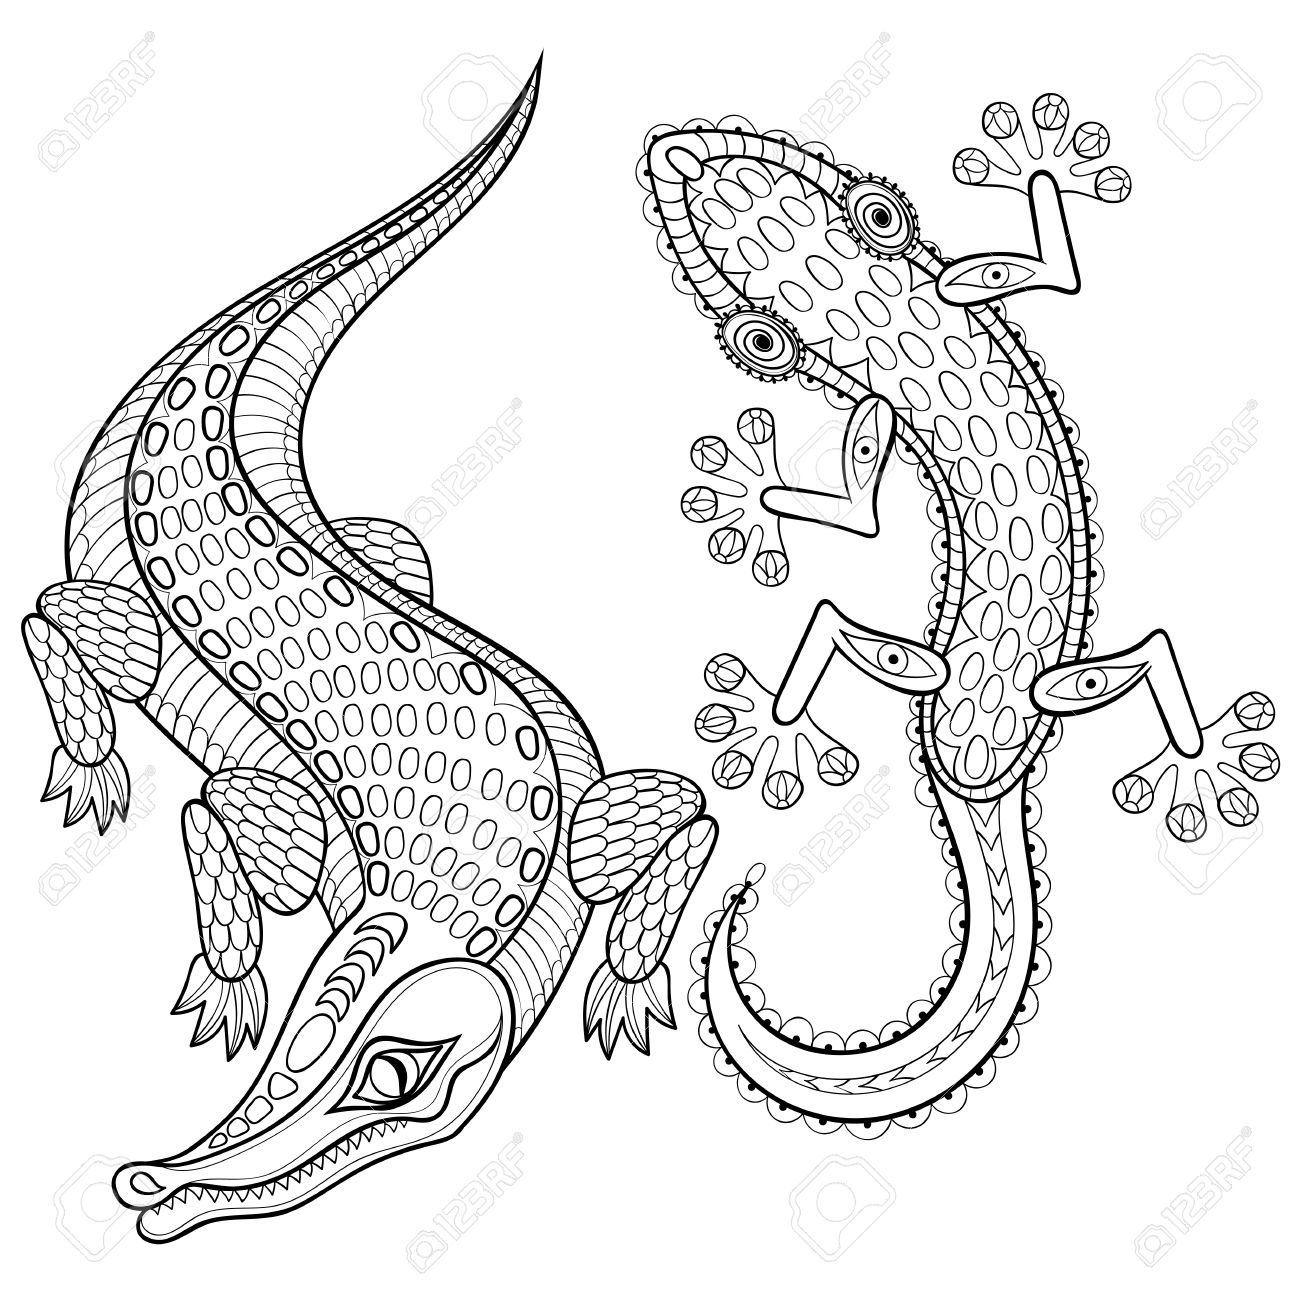 hand drawn zentangled crocodile and lizard for coloring